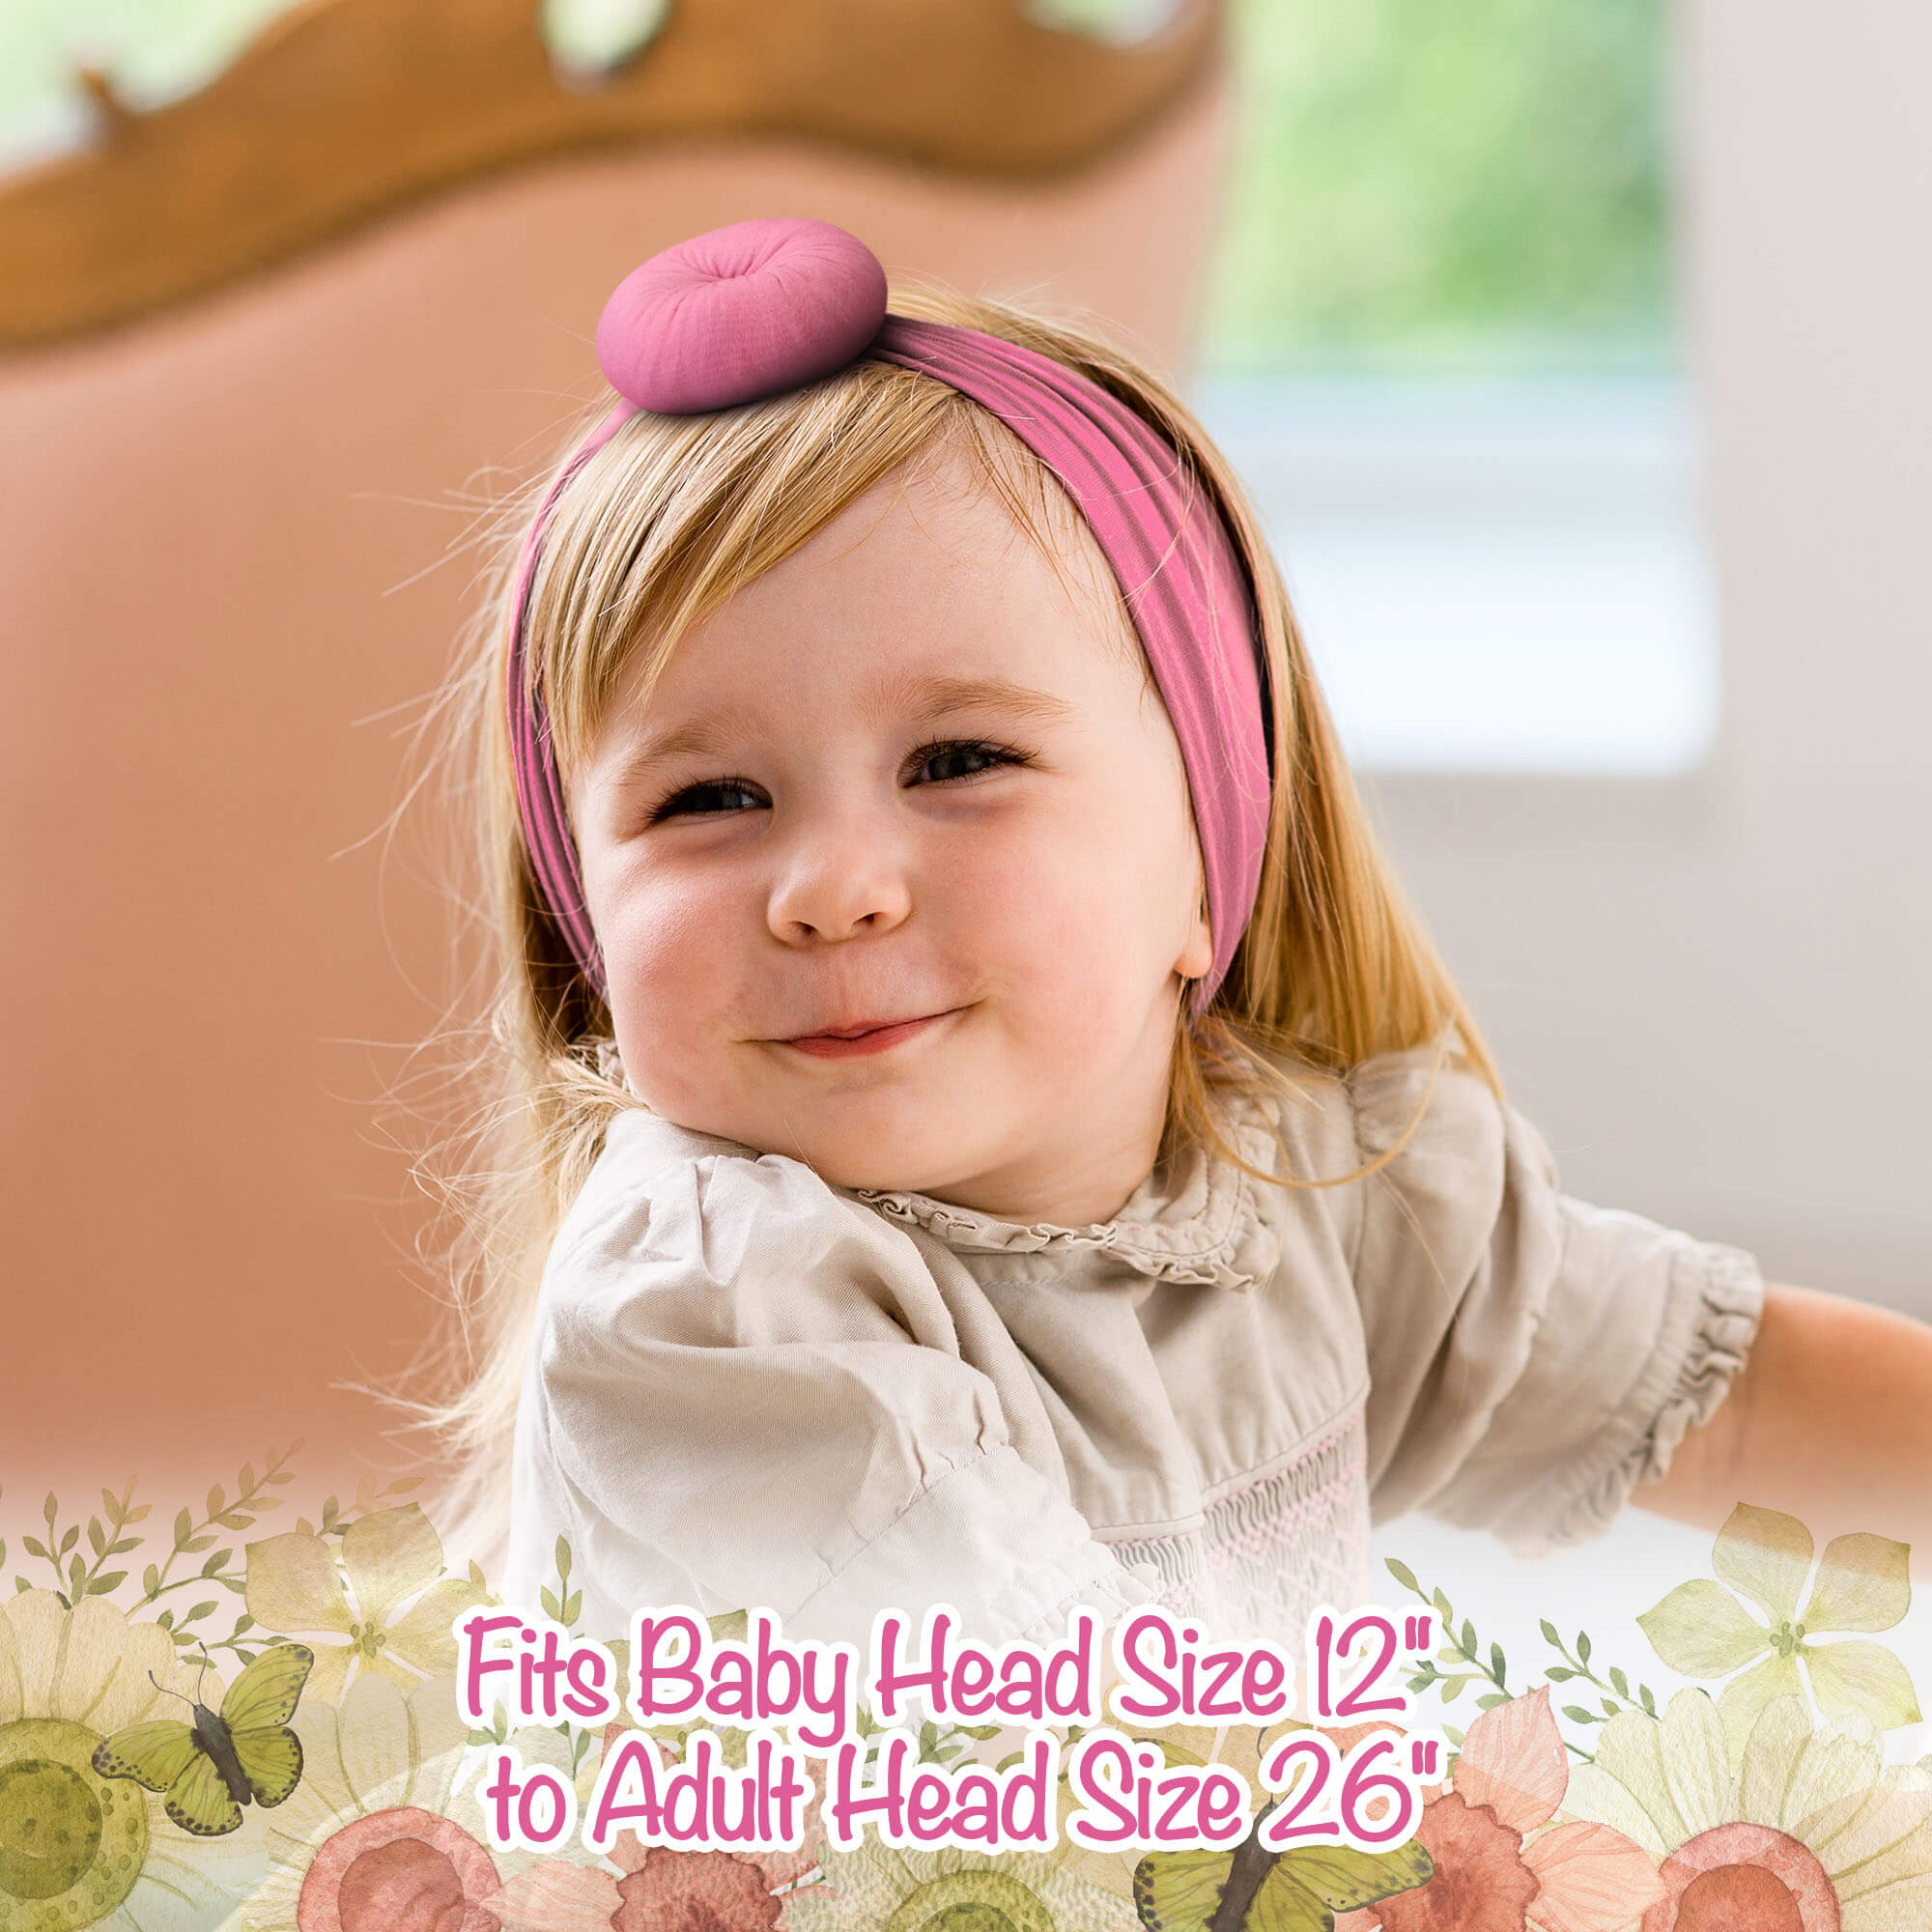 a little girl with a pink hat on her head